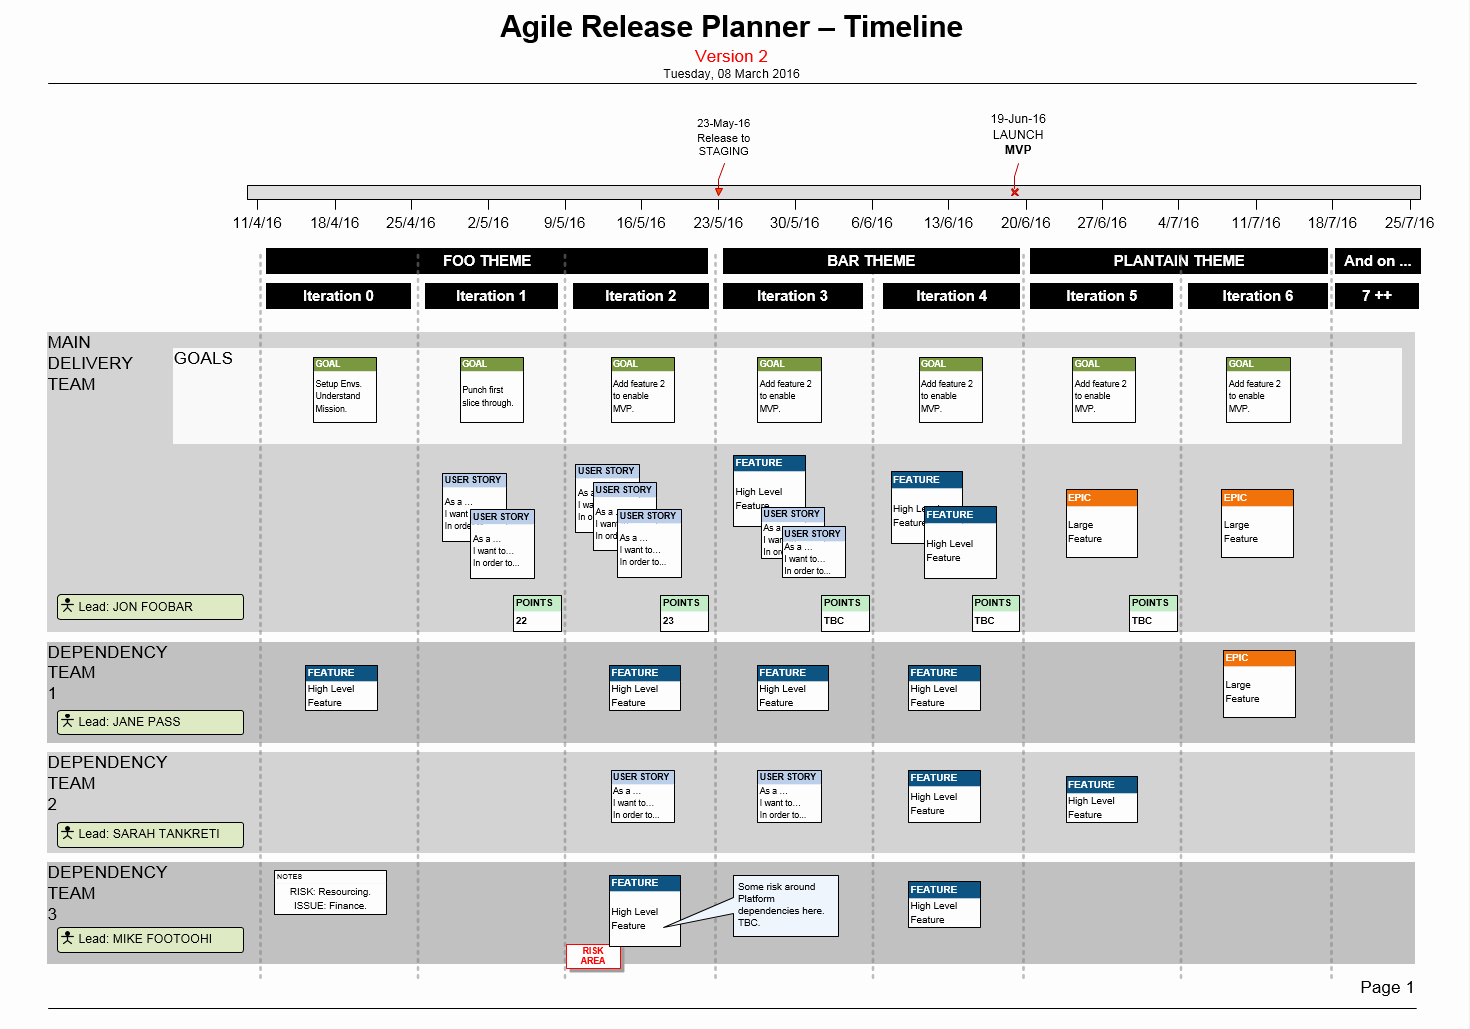 Agile Project Plan Template Lovely Visio Agile Release Plan for Scrum Teams Story Mapping